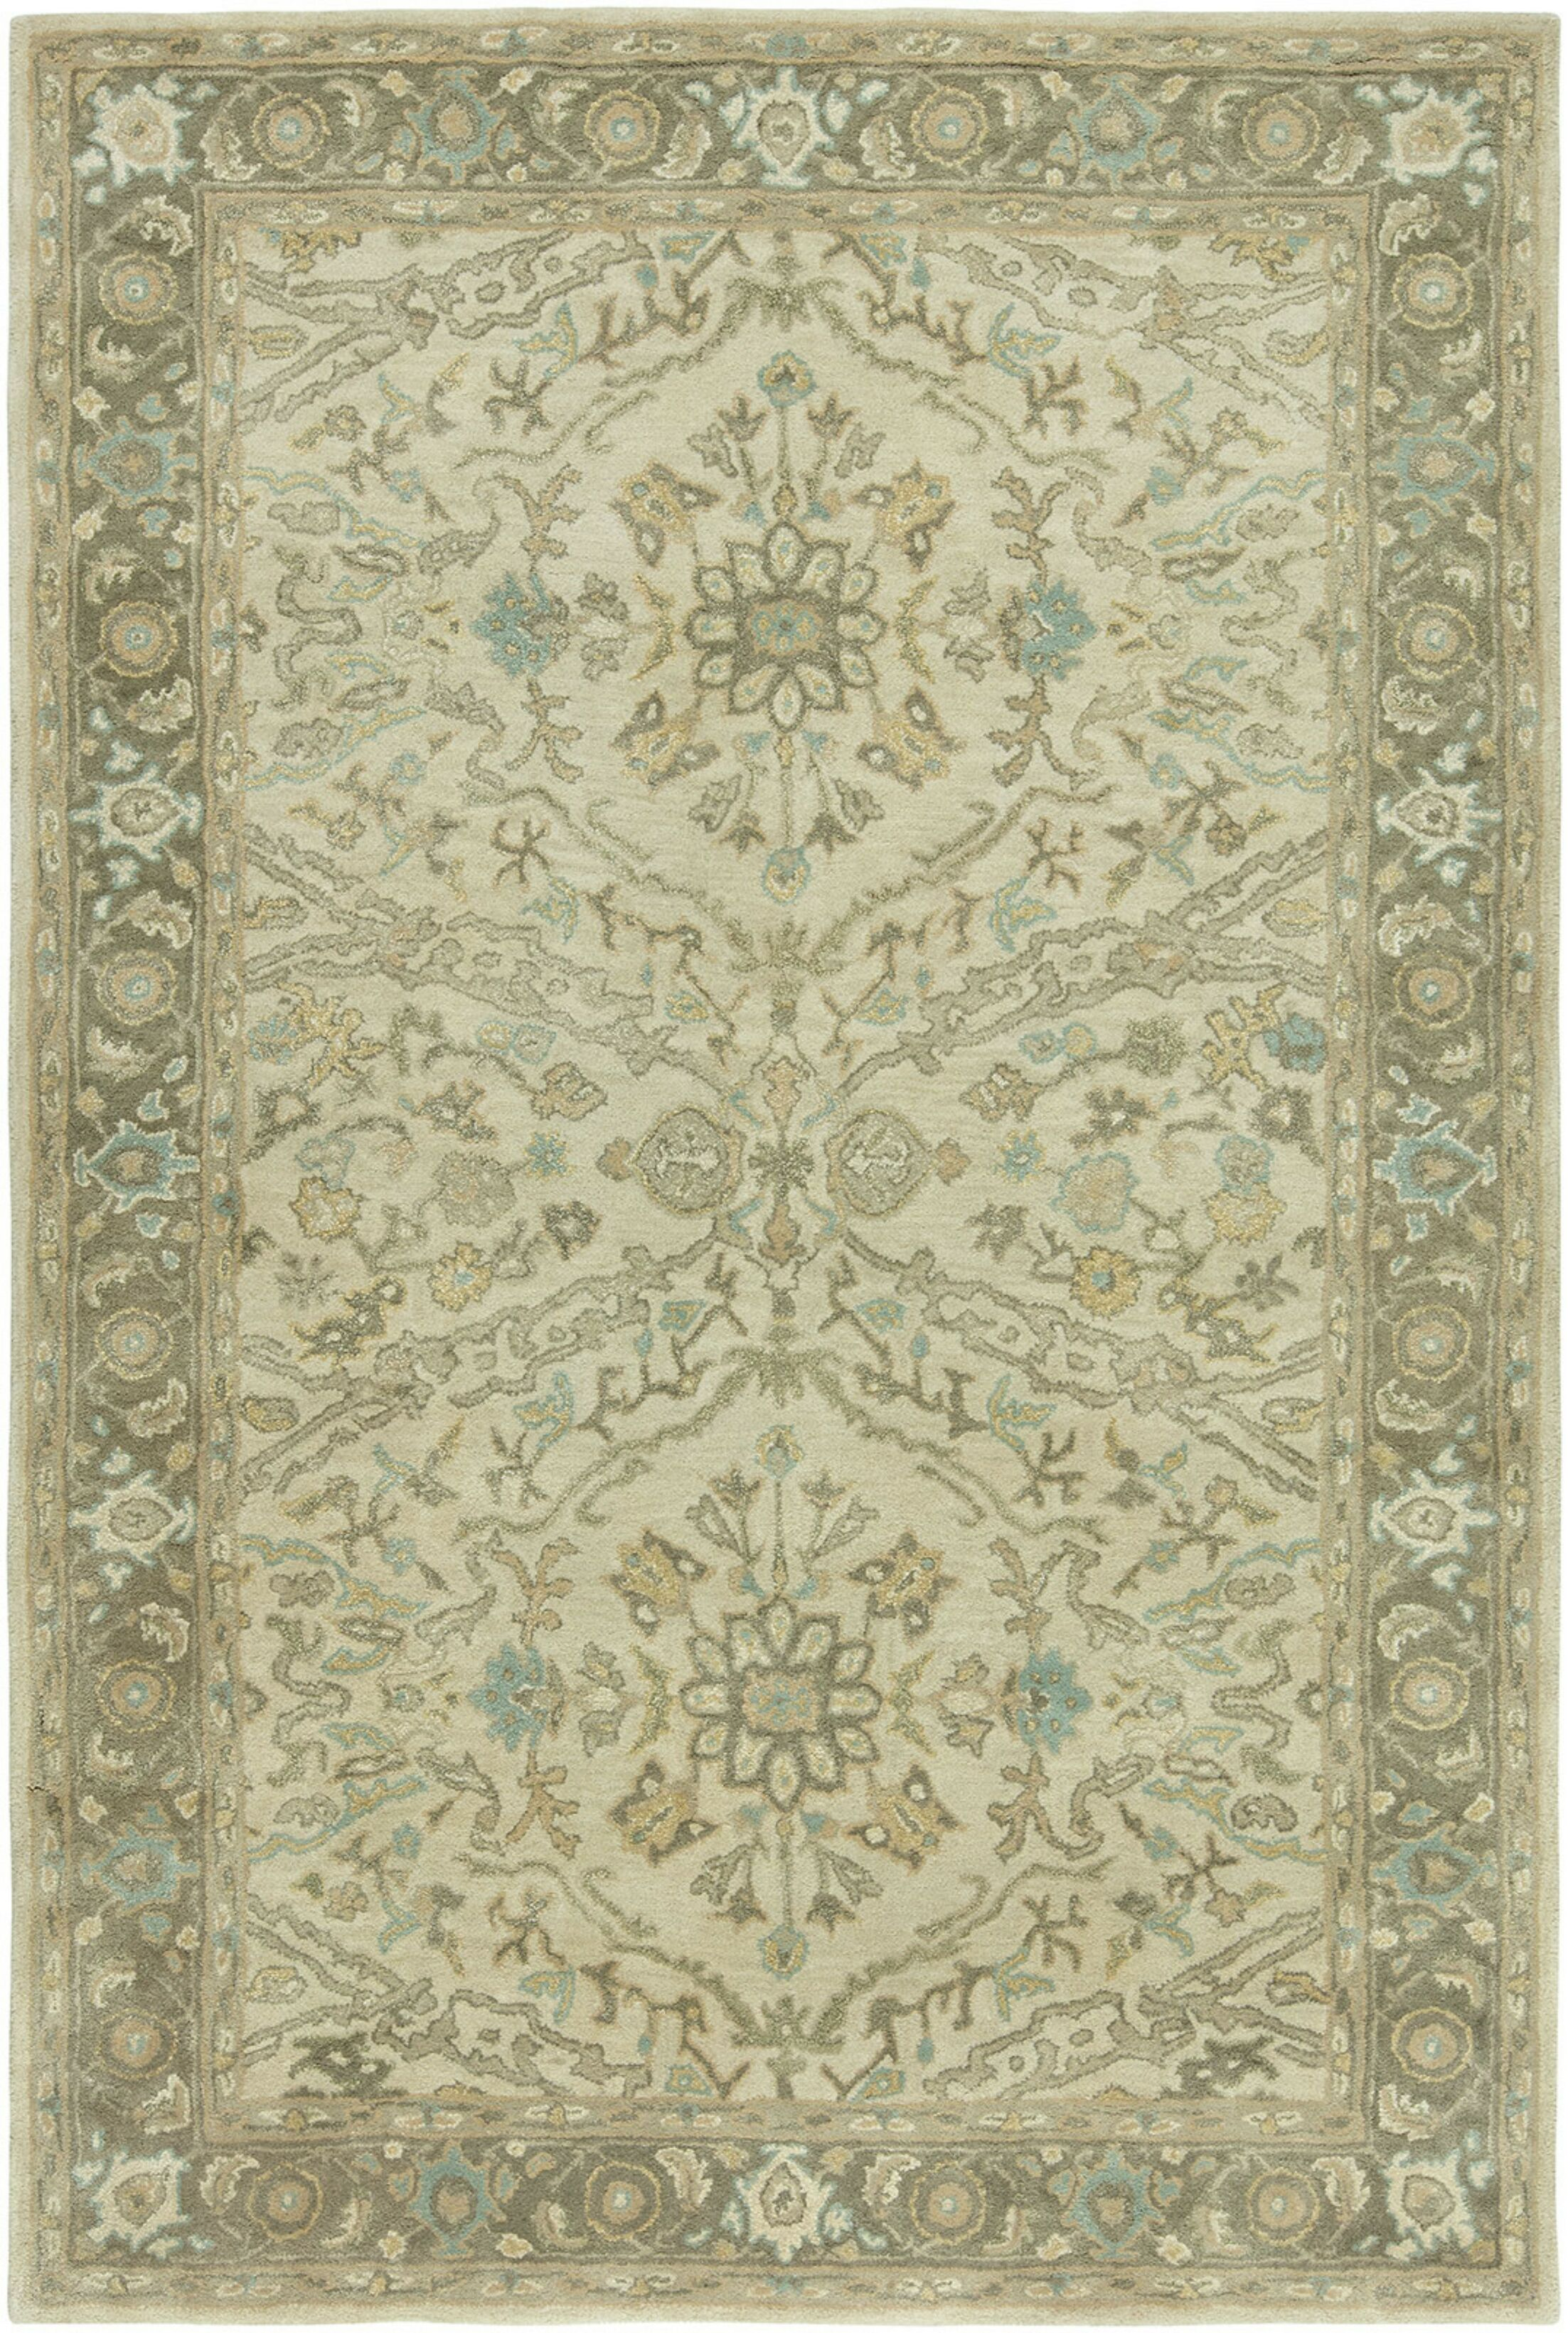 Stanley Hand-Tufted Wool Ivory Area Rug Rug Size: Rectangle 5'6